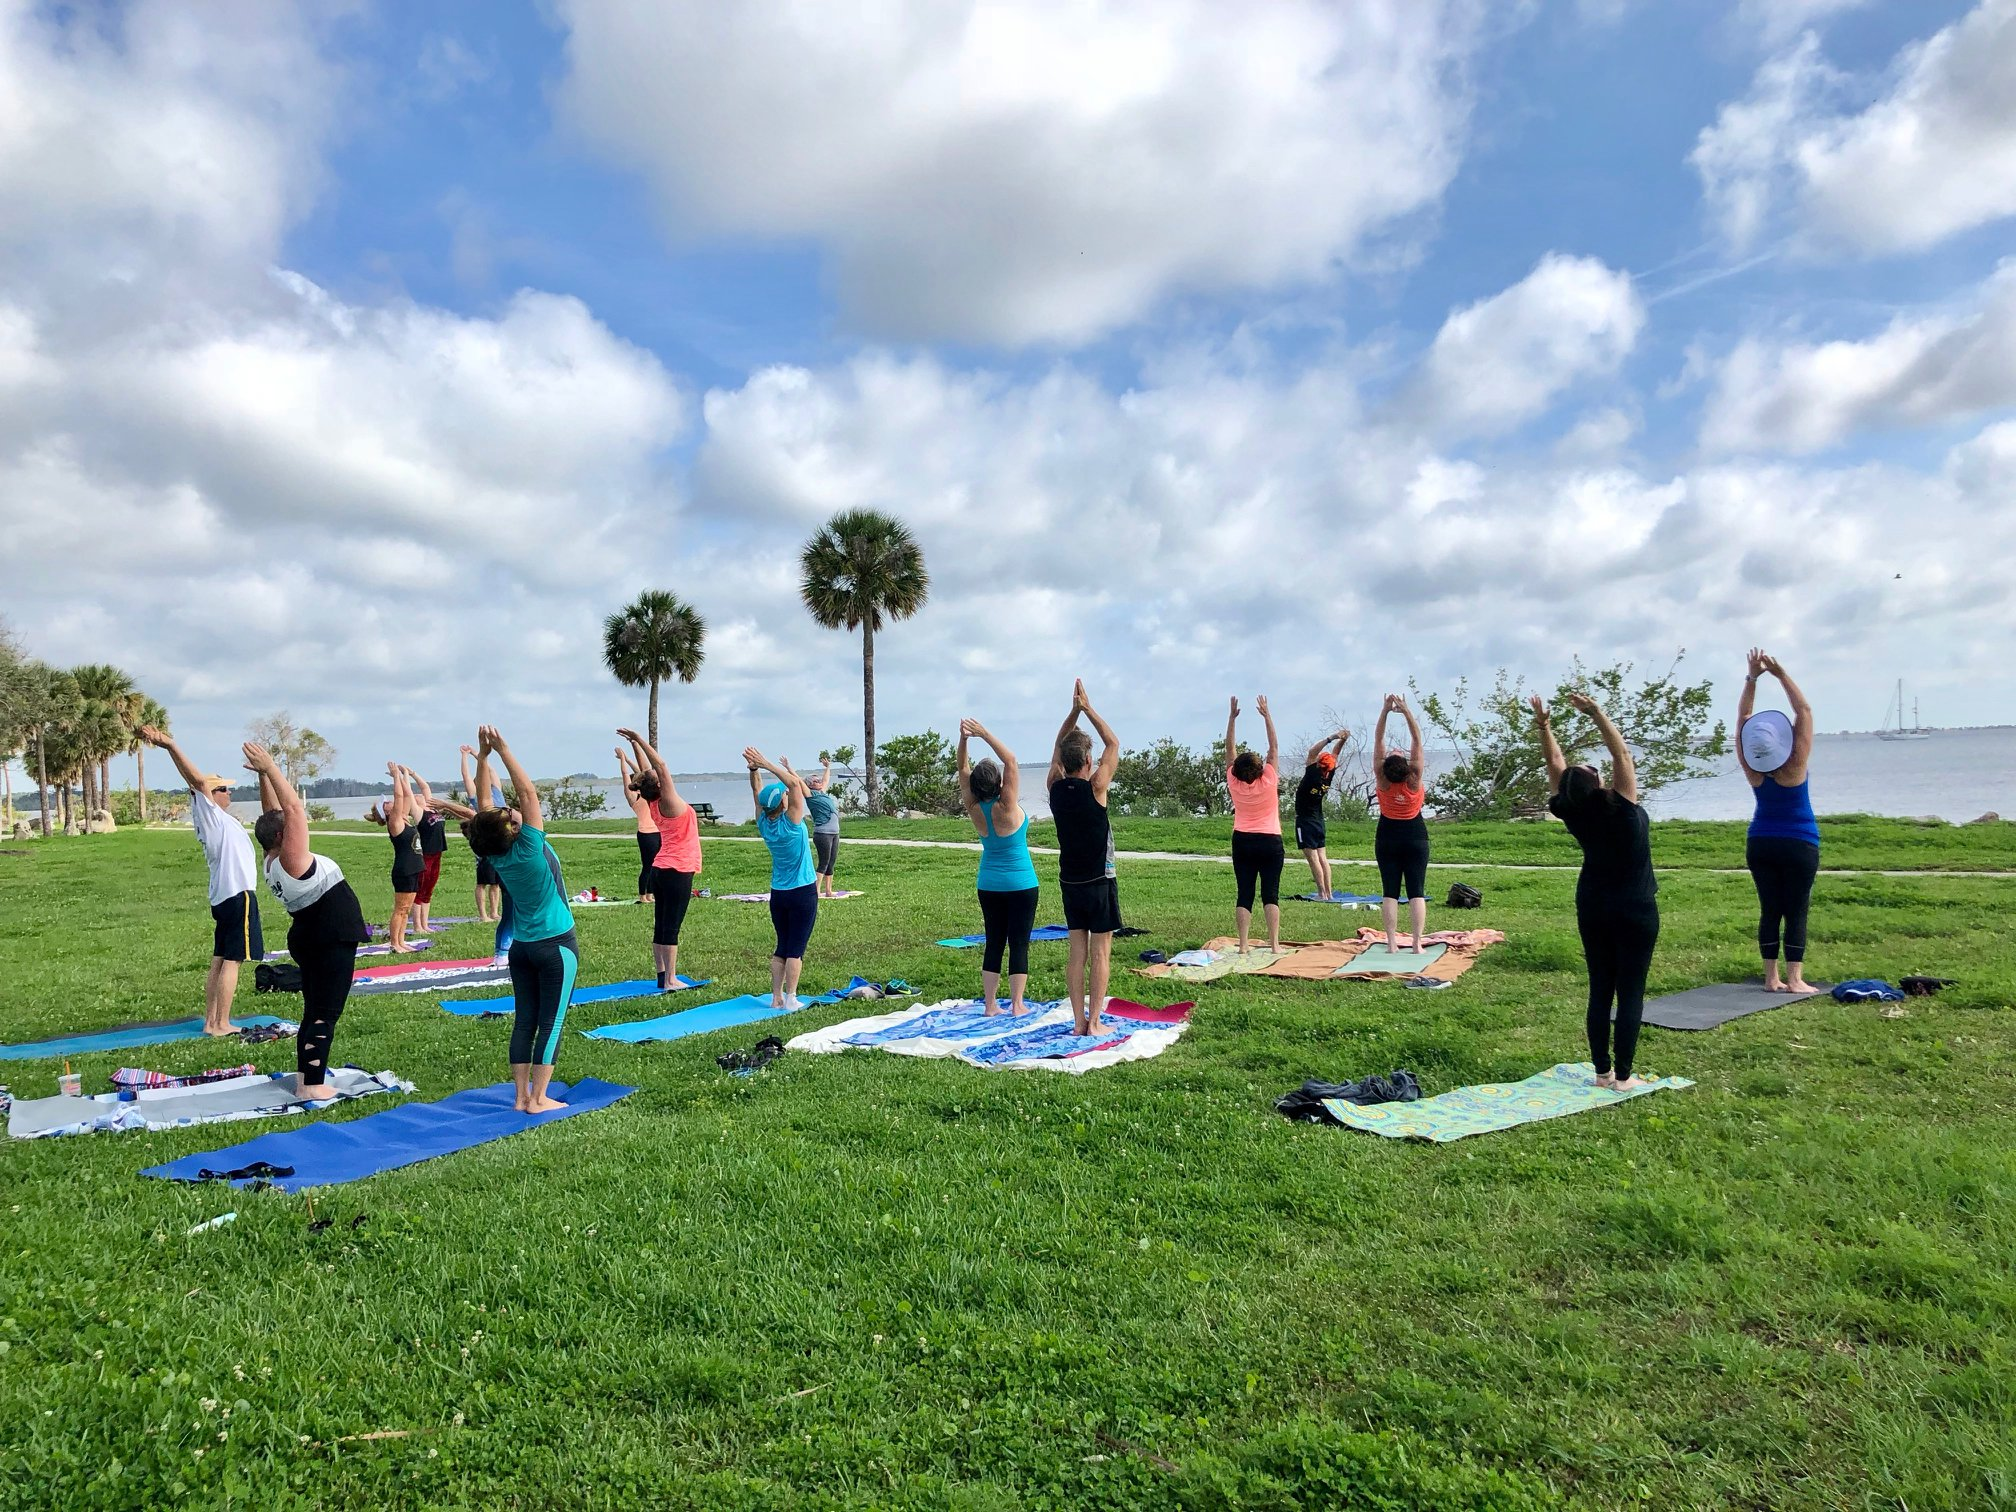 Titusville Yoga in the Park Sundays 9AM Sponsored by The Titusville Yoga Loft at Sand Point Park 101 N Washington Ave, Titusville, Florida 5.jpg